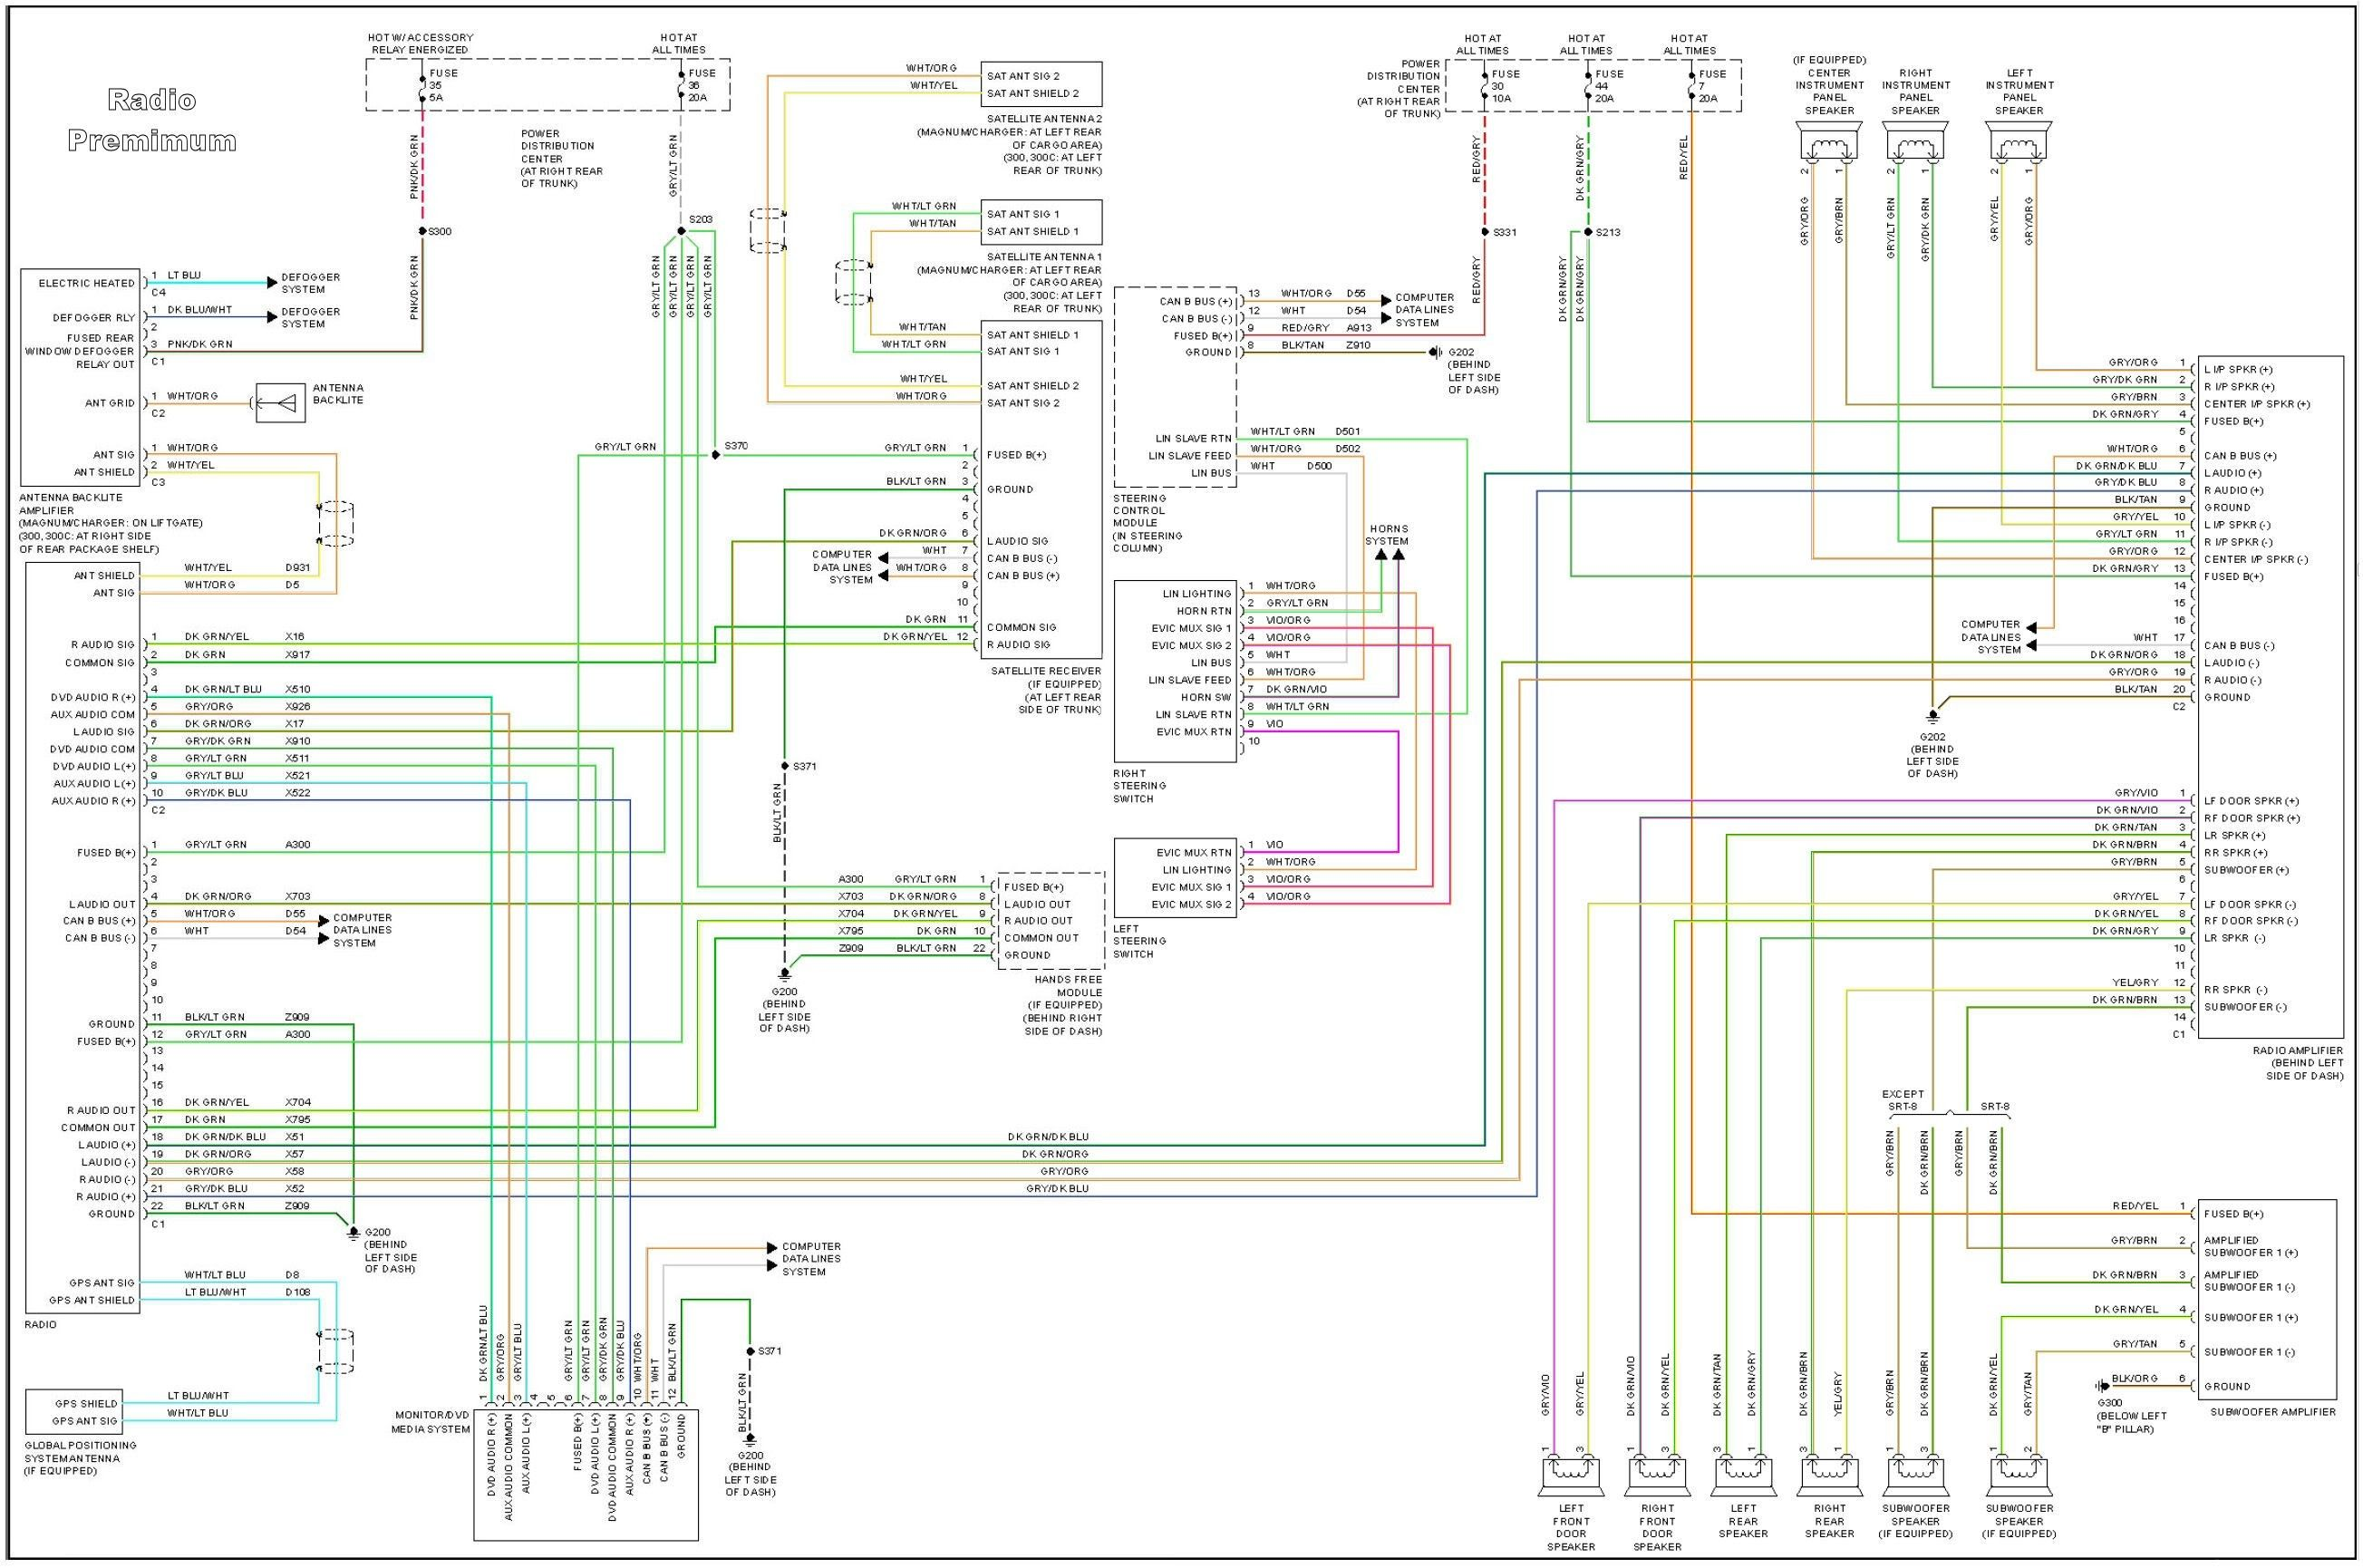 Awesome Wiring Diagram Jeep Grand Cherokee Diagrams Digramssample Diagramimages Wiringdiagramsample Wiringdiag Jeep Grand Cherokee Chrysler 300 Jeep Grand